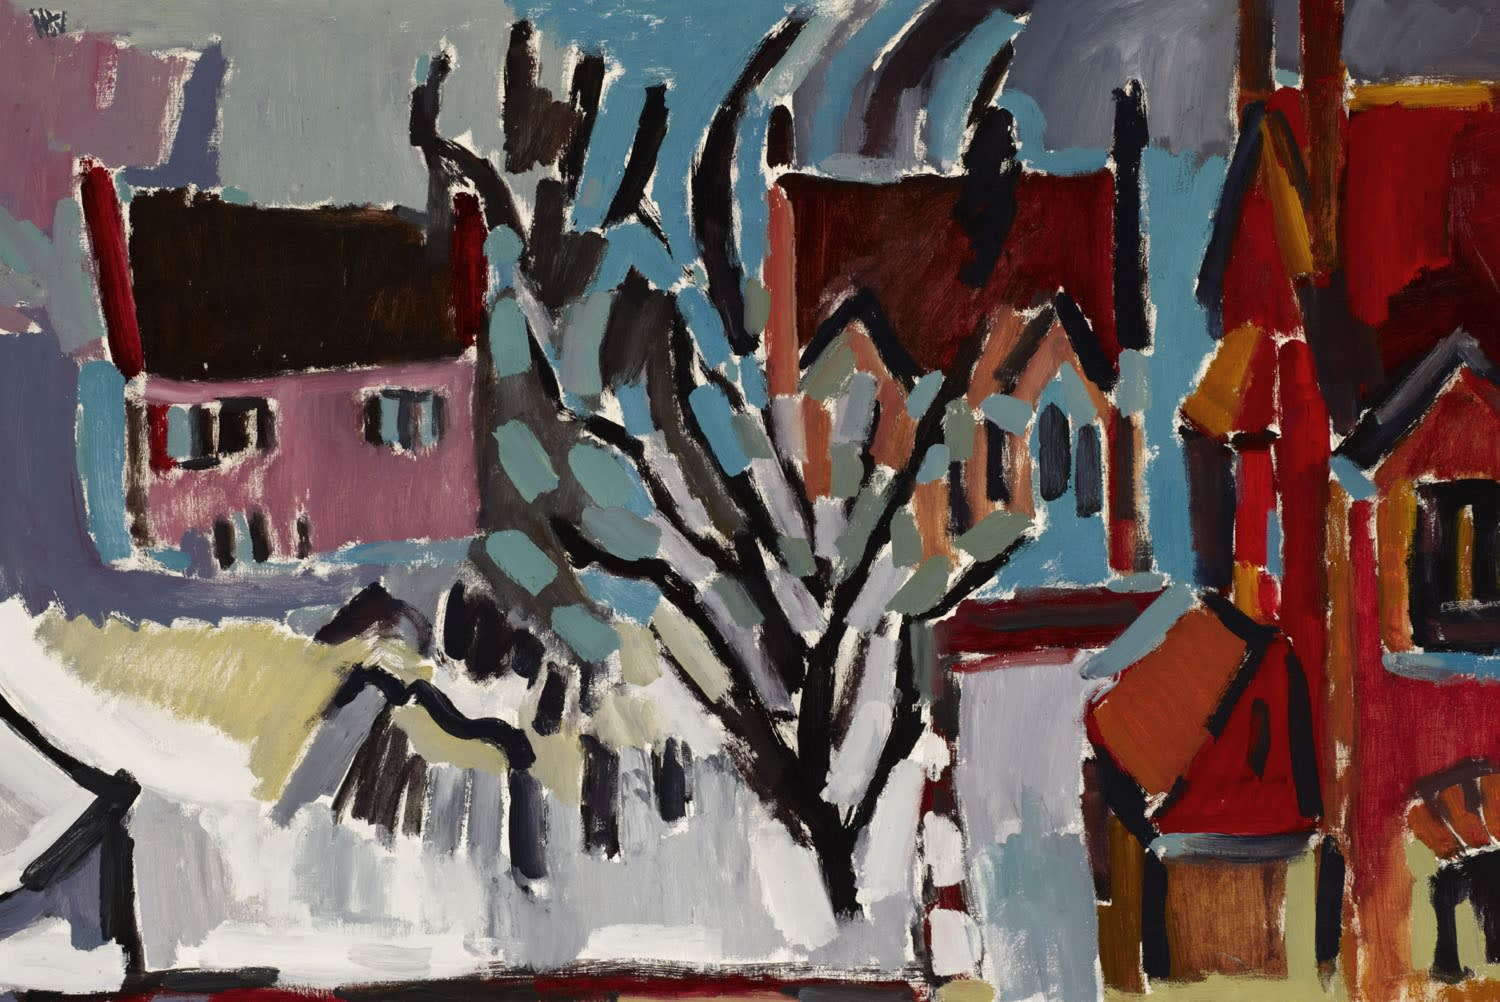 Harry Weinberger (1924-2009) In Winter, Manchester n.d. Acrylic on canvas 60 x 90 cm Ben Uri Collection © Harry Weinberger estate To see and discover more about this artist click here